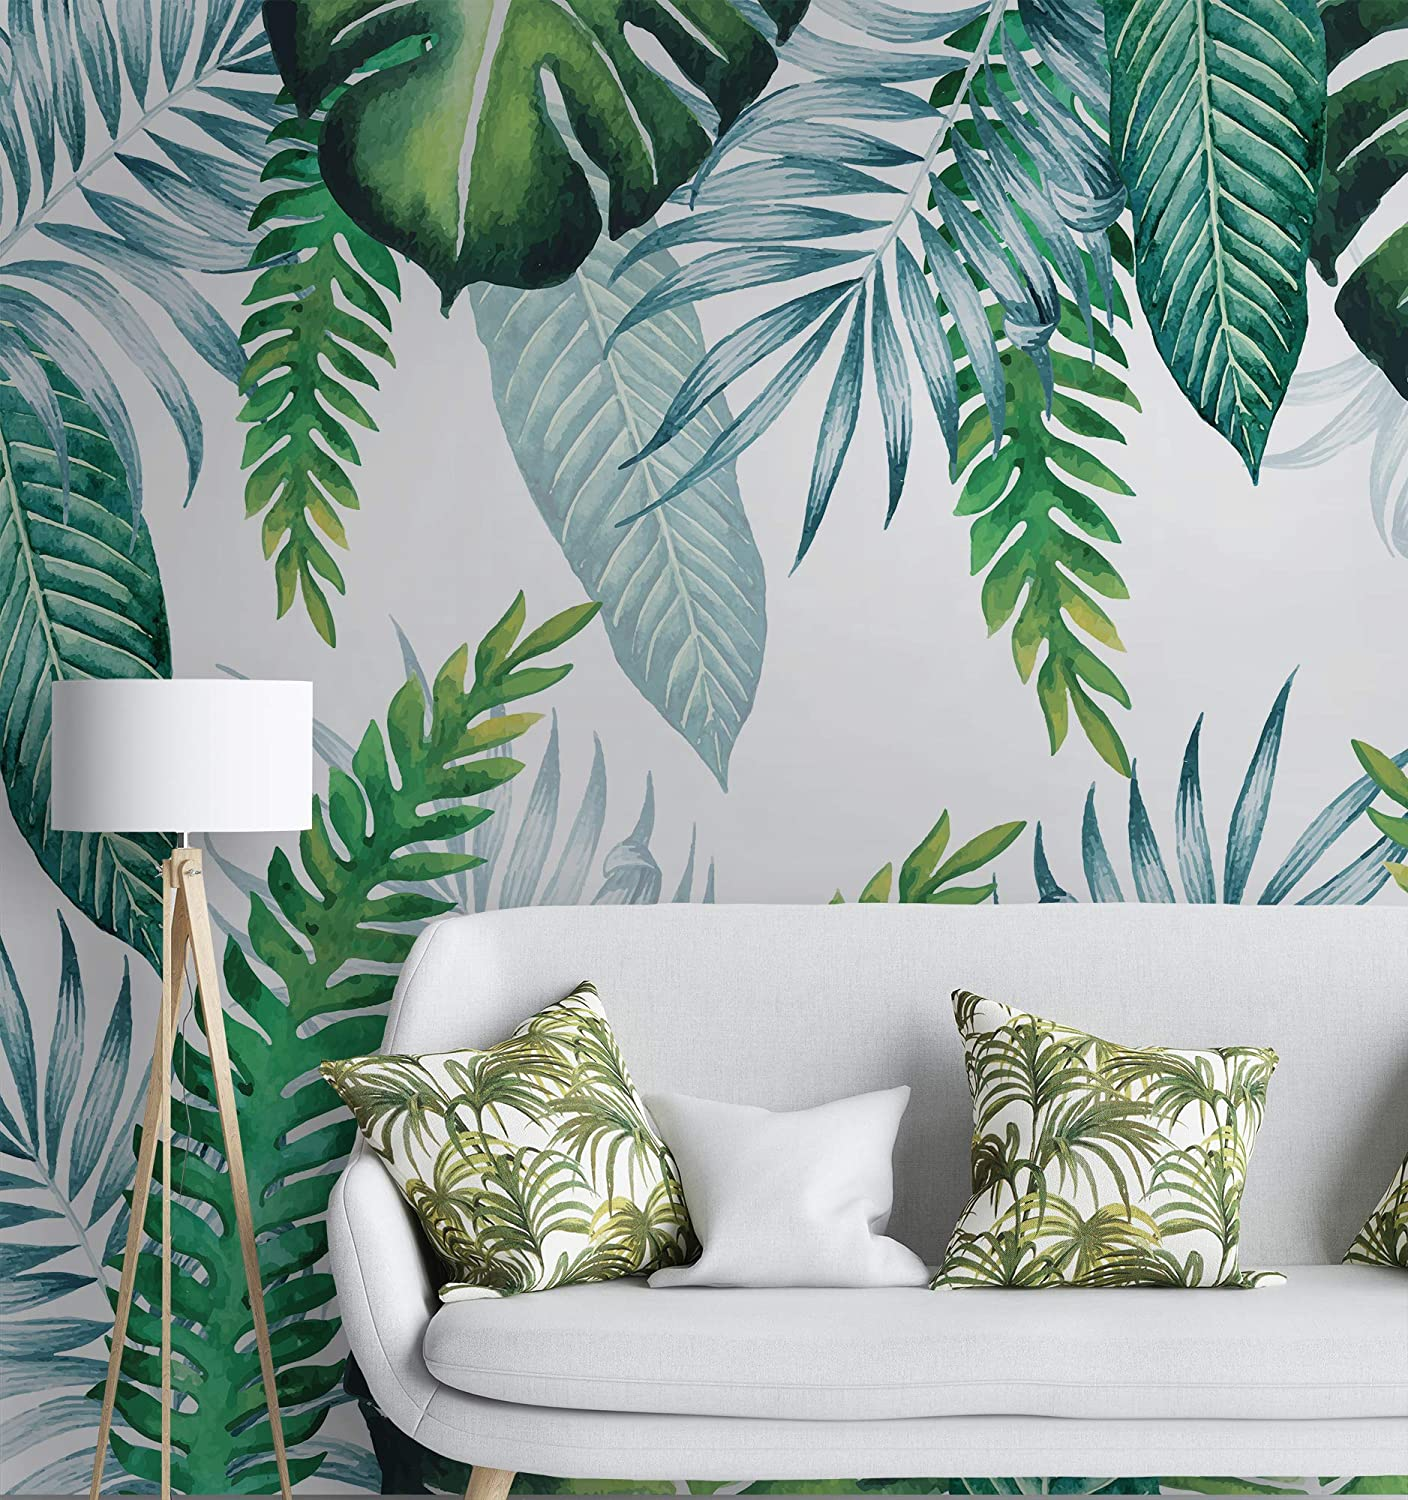 Amazon Com Murwall Leaf Wallpaper Tropical Leaves Wall Murals Watercolor Wall Art Natural Wall Decor Exotic Cafe Design Living Room Bedroom Kitchen Handmade Exclusive designs by cutting edge stencils. murwall leaf wallpaper tropical leaves